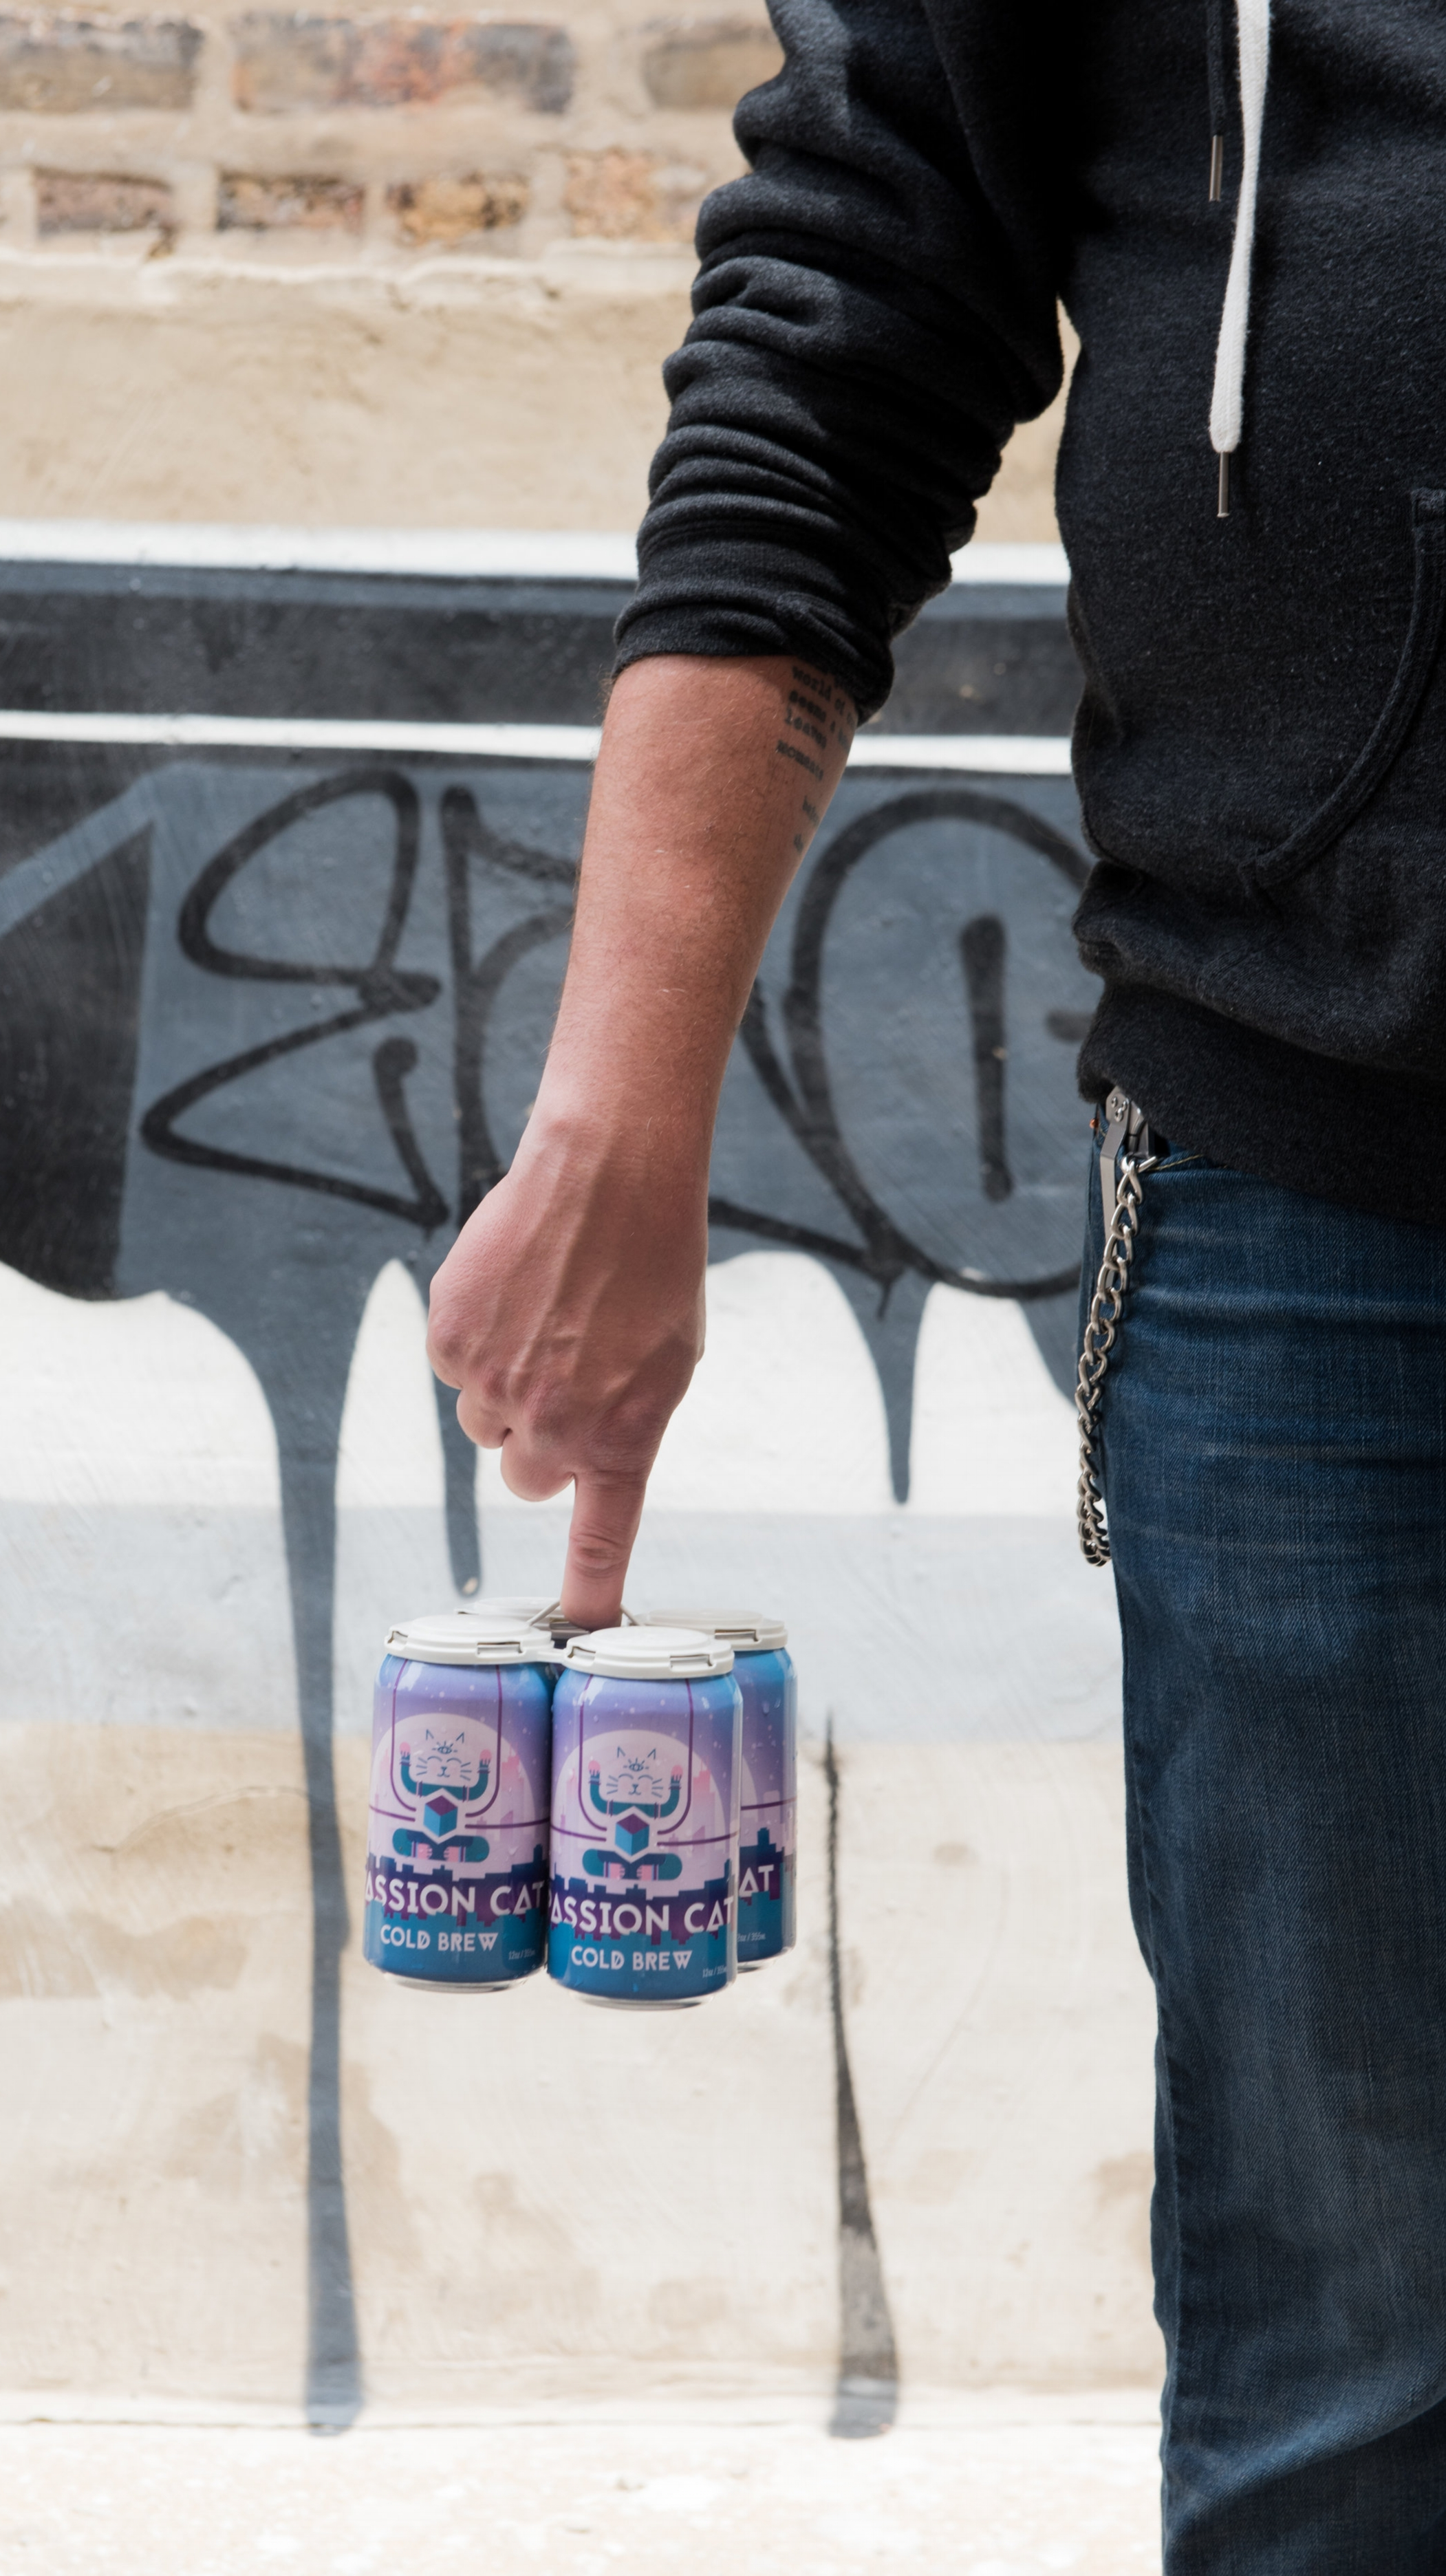 Canned Cold Brew - The perfect choice for grab-and-go service, canned cold brew gives drinkers the opportunity to stash a cold one in their bag when they're on the run, or grab a few extras to keep in your fridge at home.